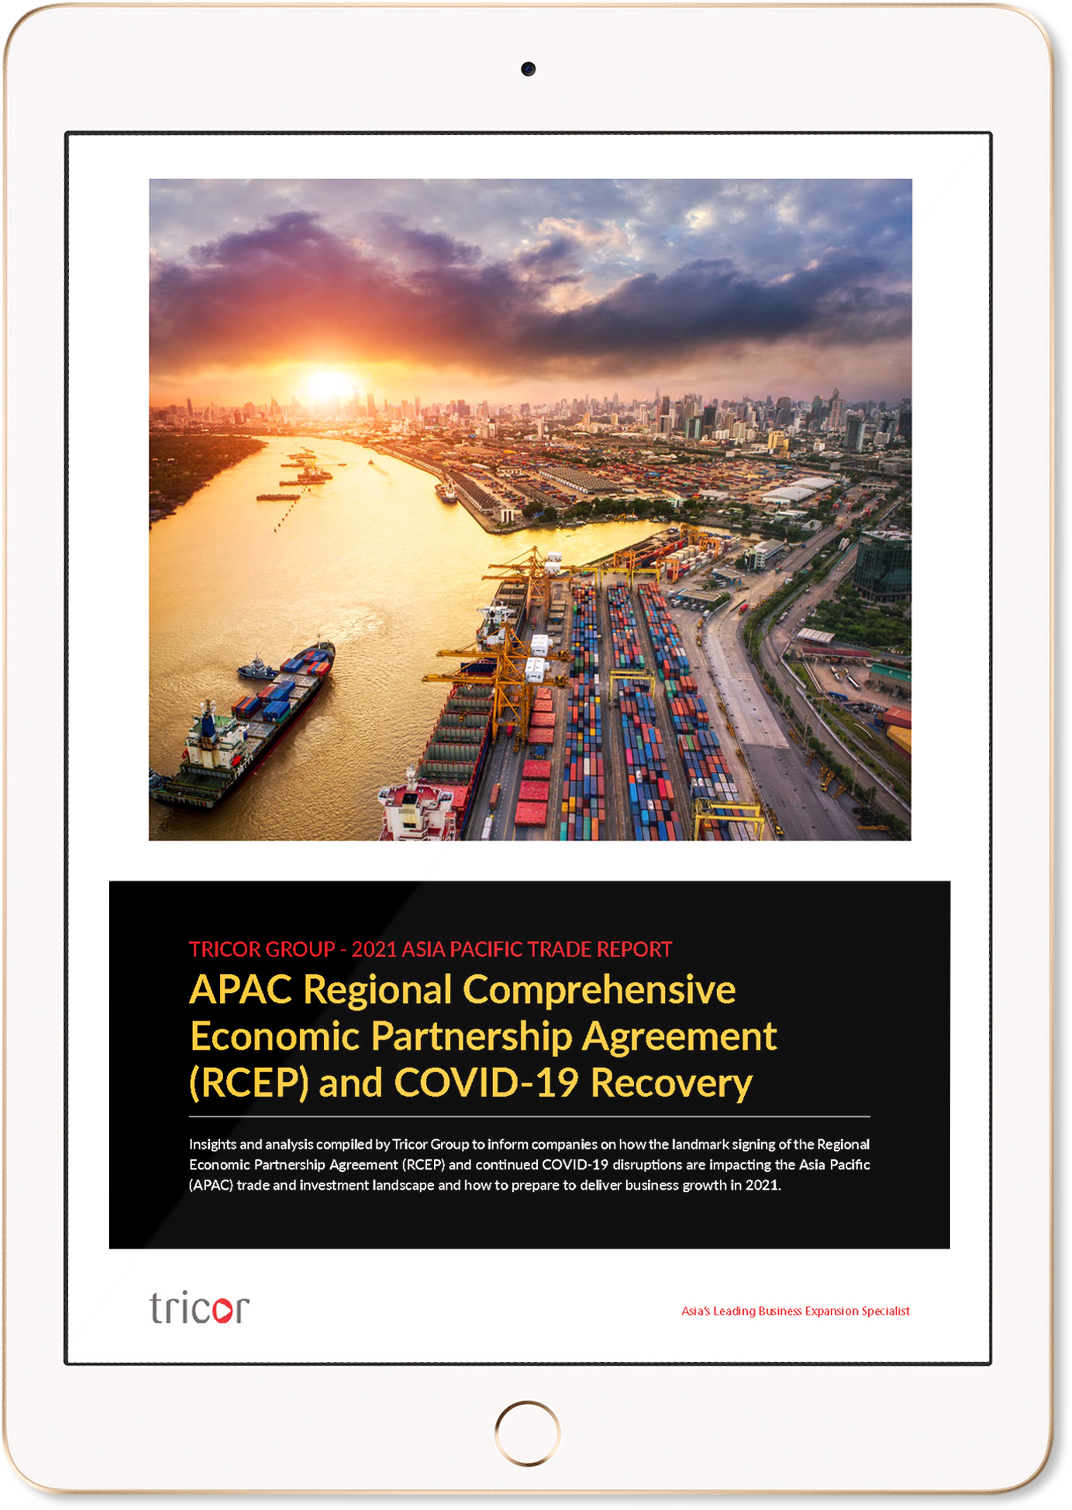 APAC Regional Comprehensive Economic Partnership Agreement (RCEP) and COVID-19 Recovery Ipad Image